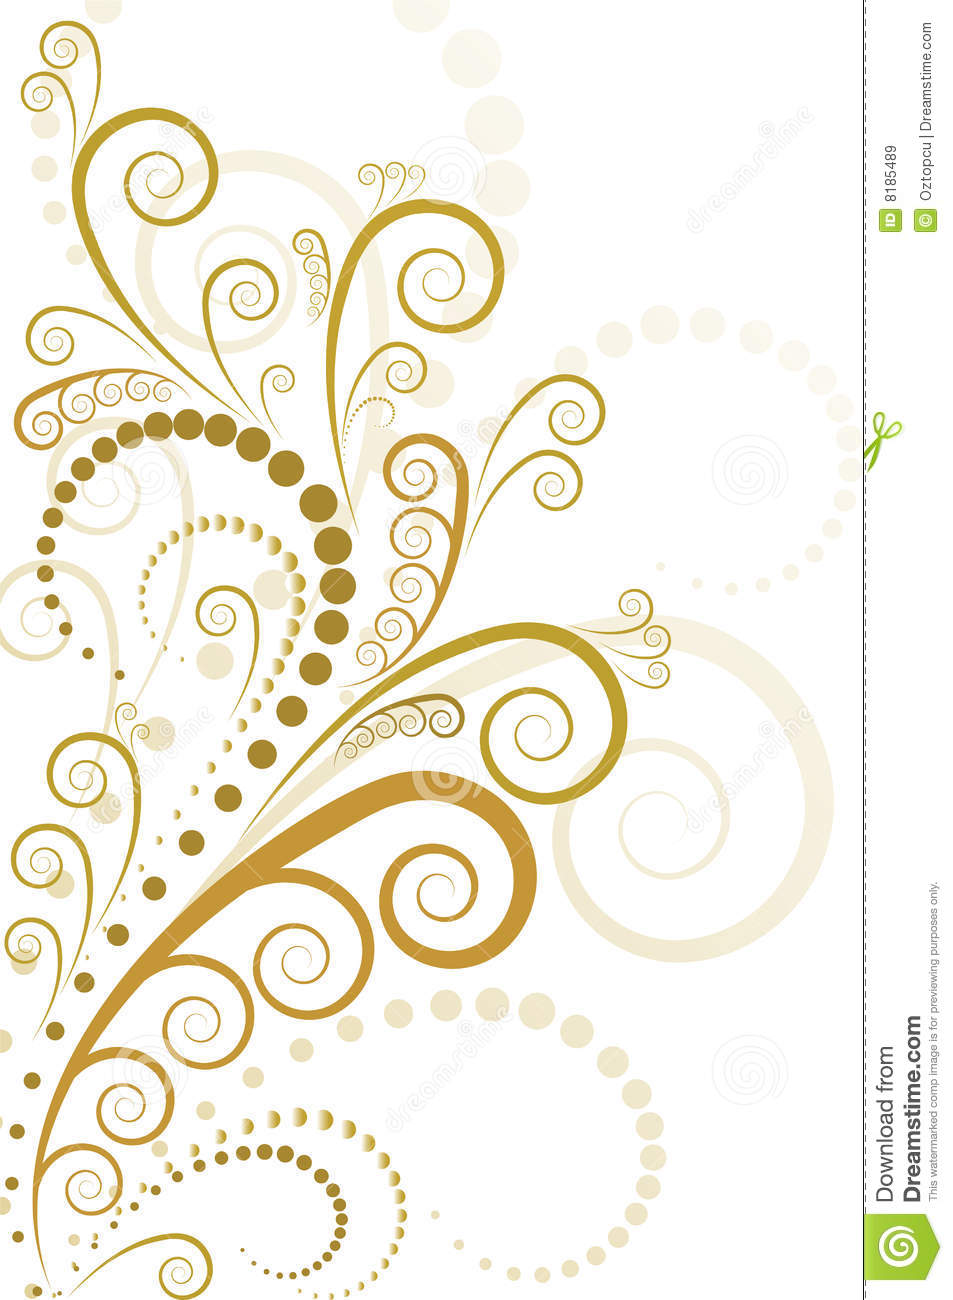 gold design clipart designs